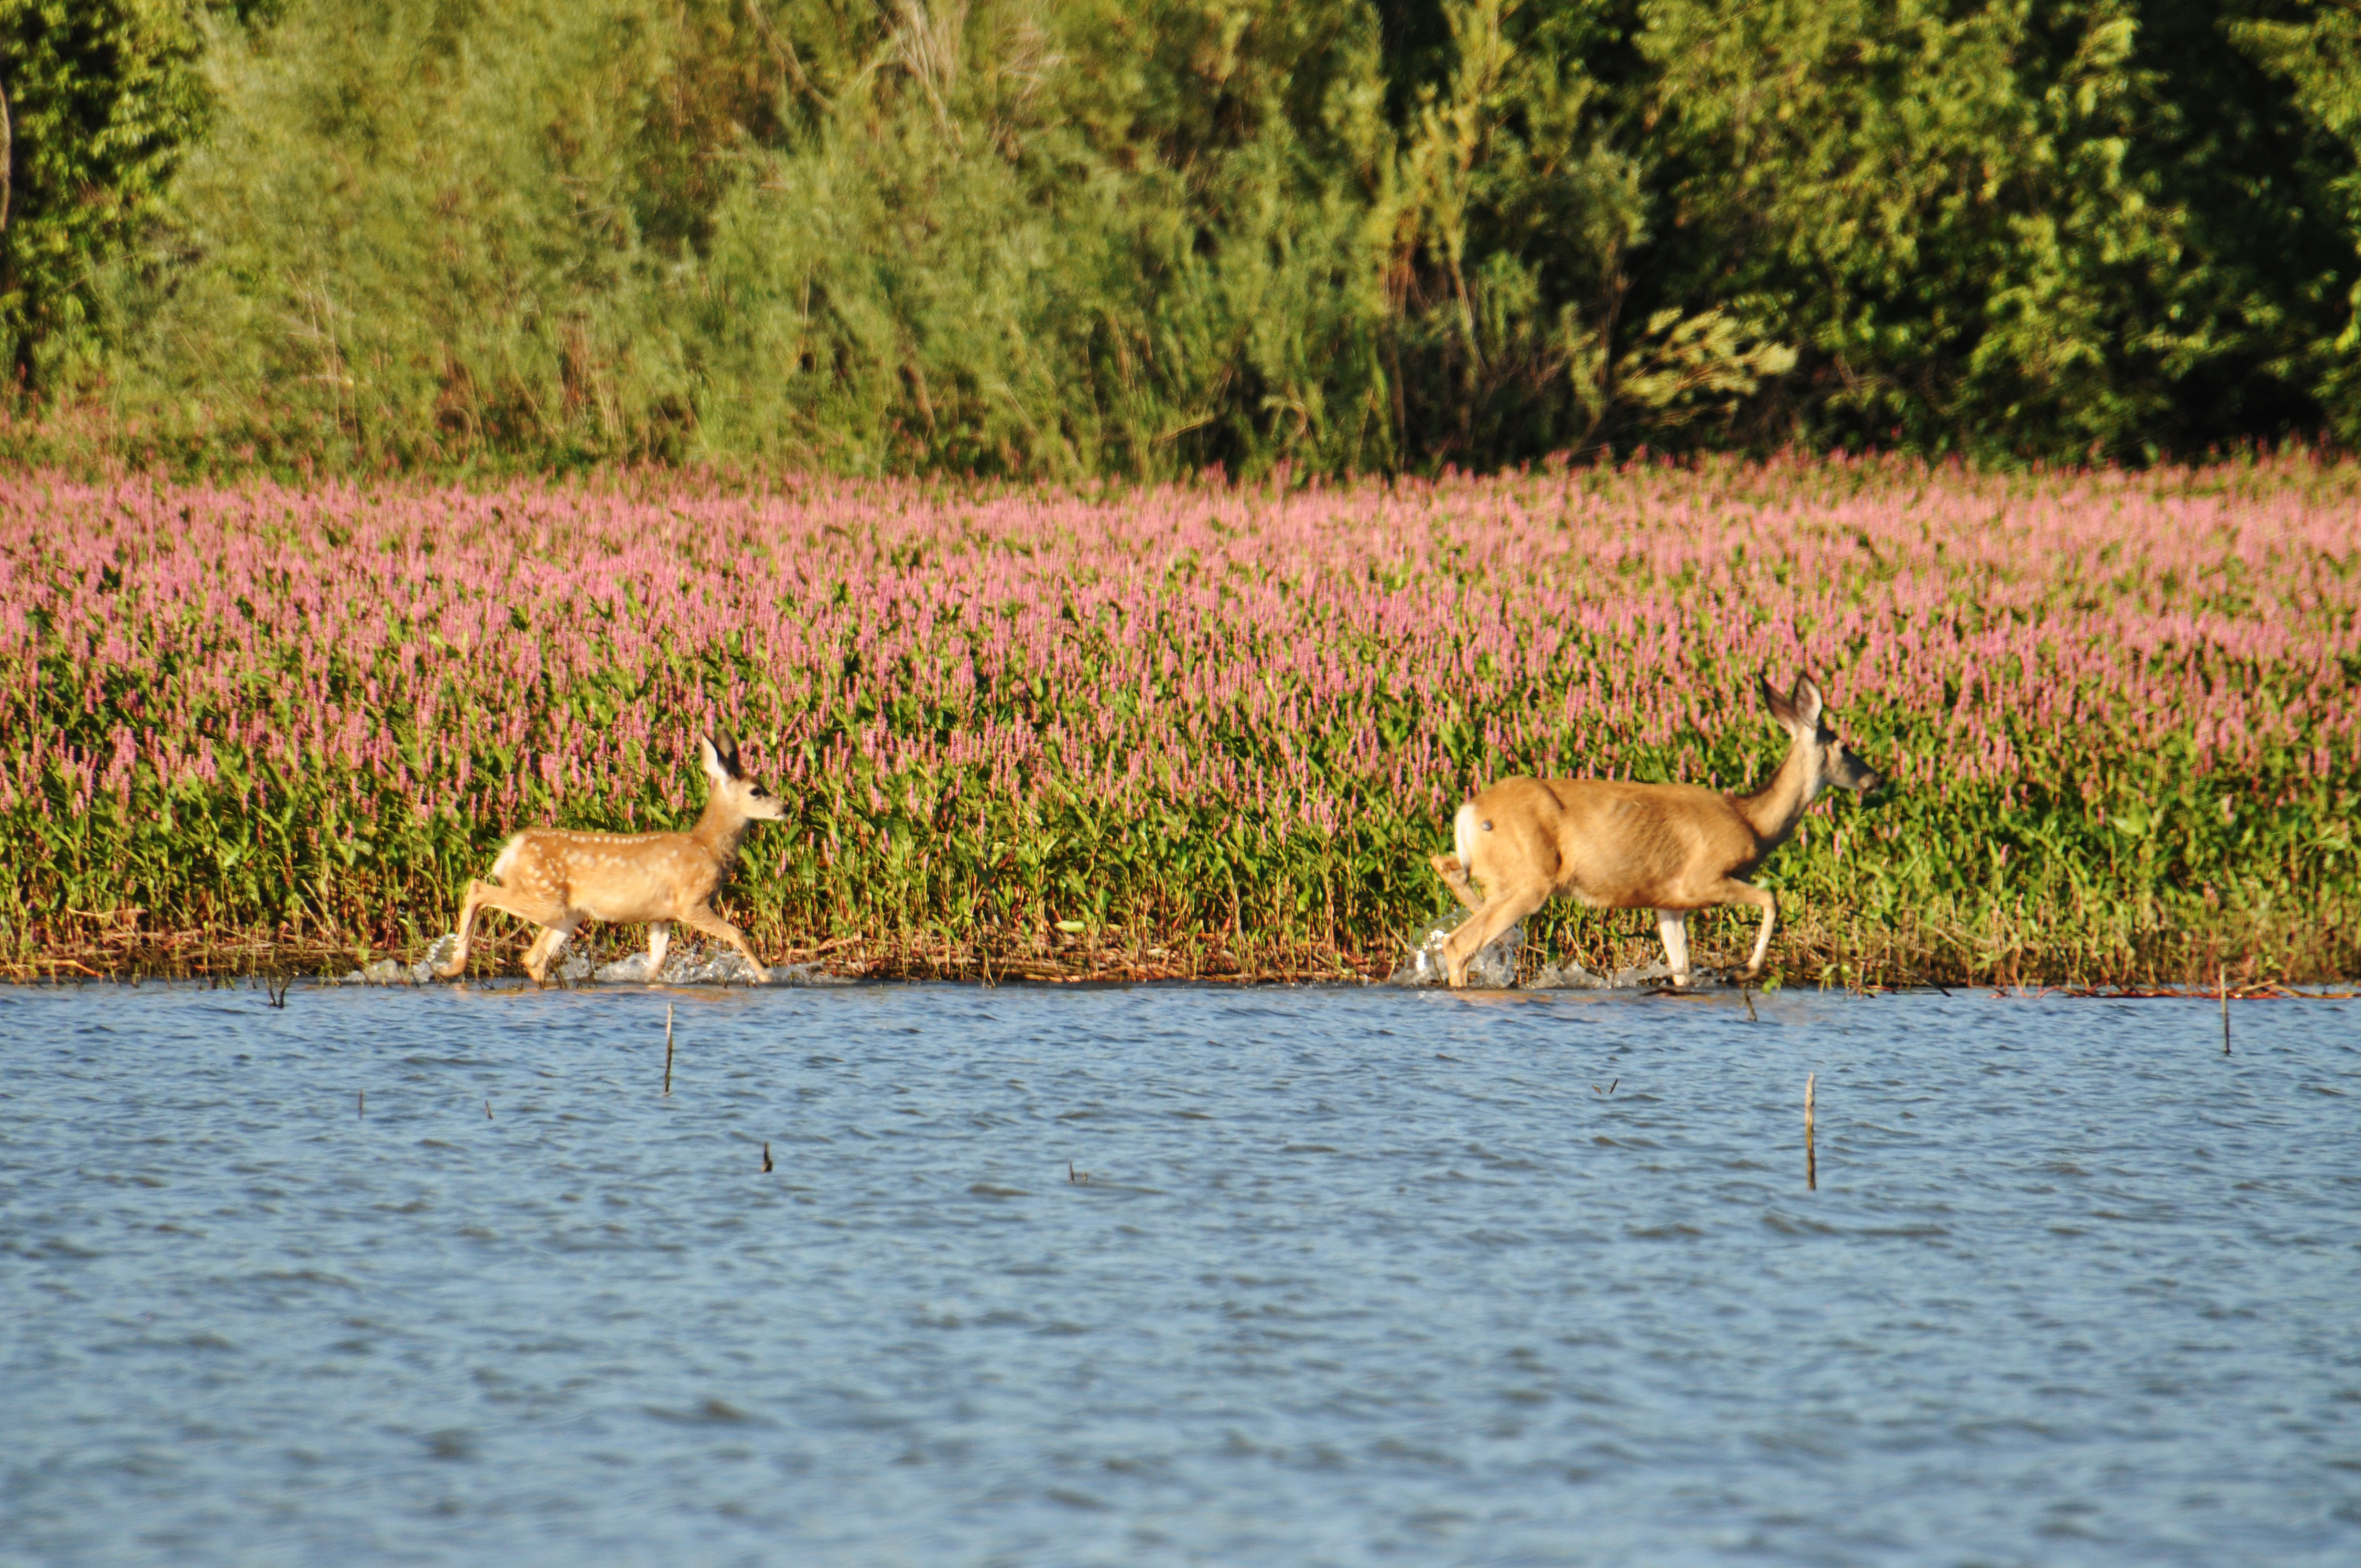 Picture of two deer walking in water near weeds